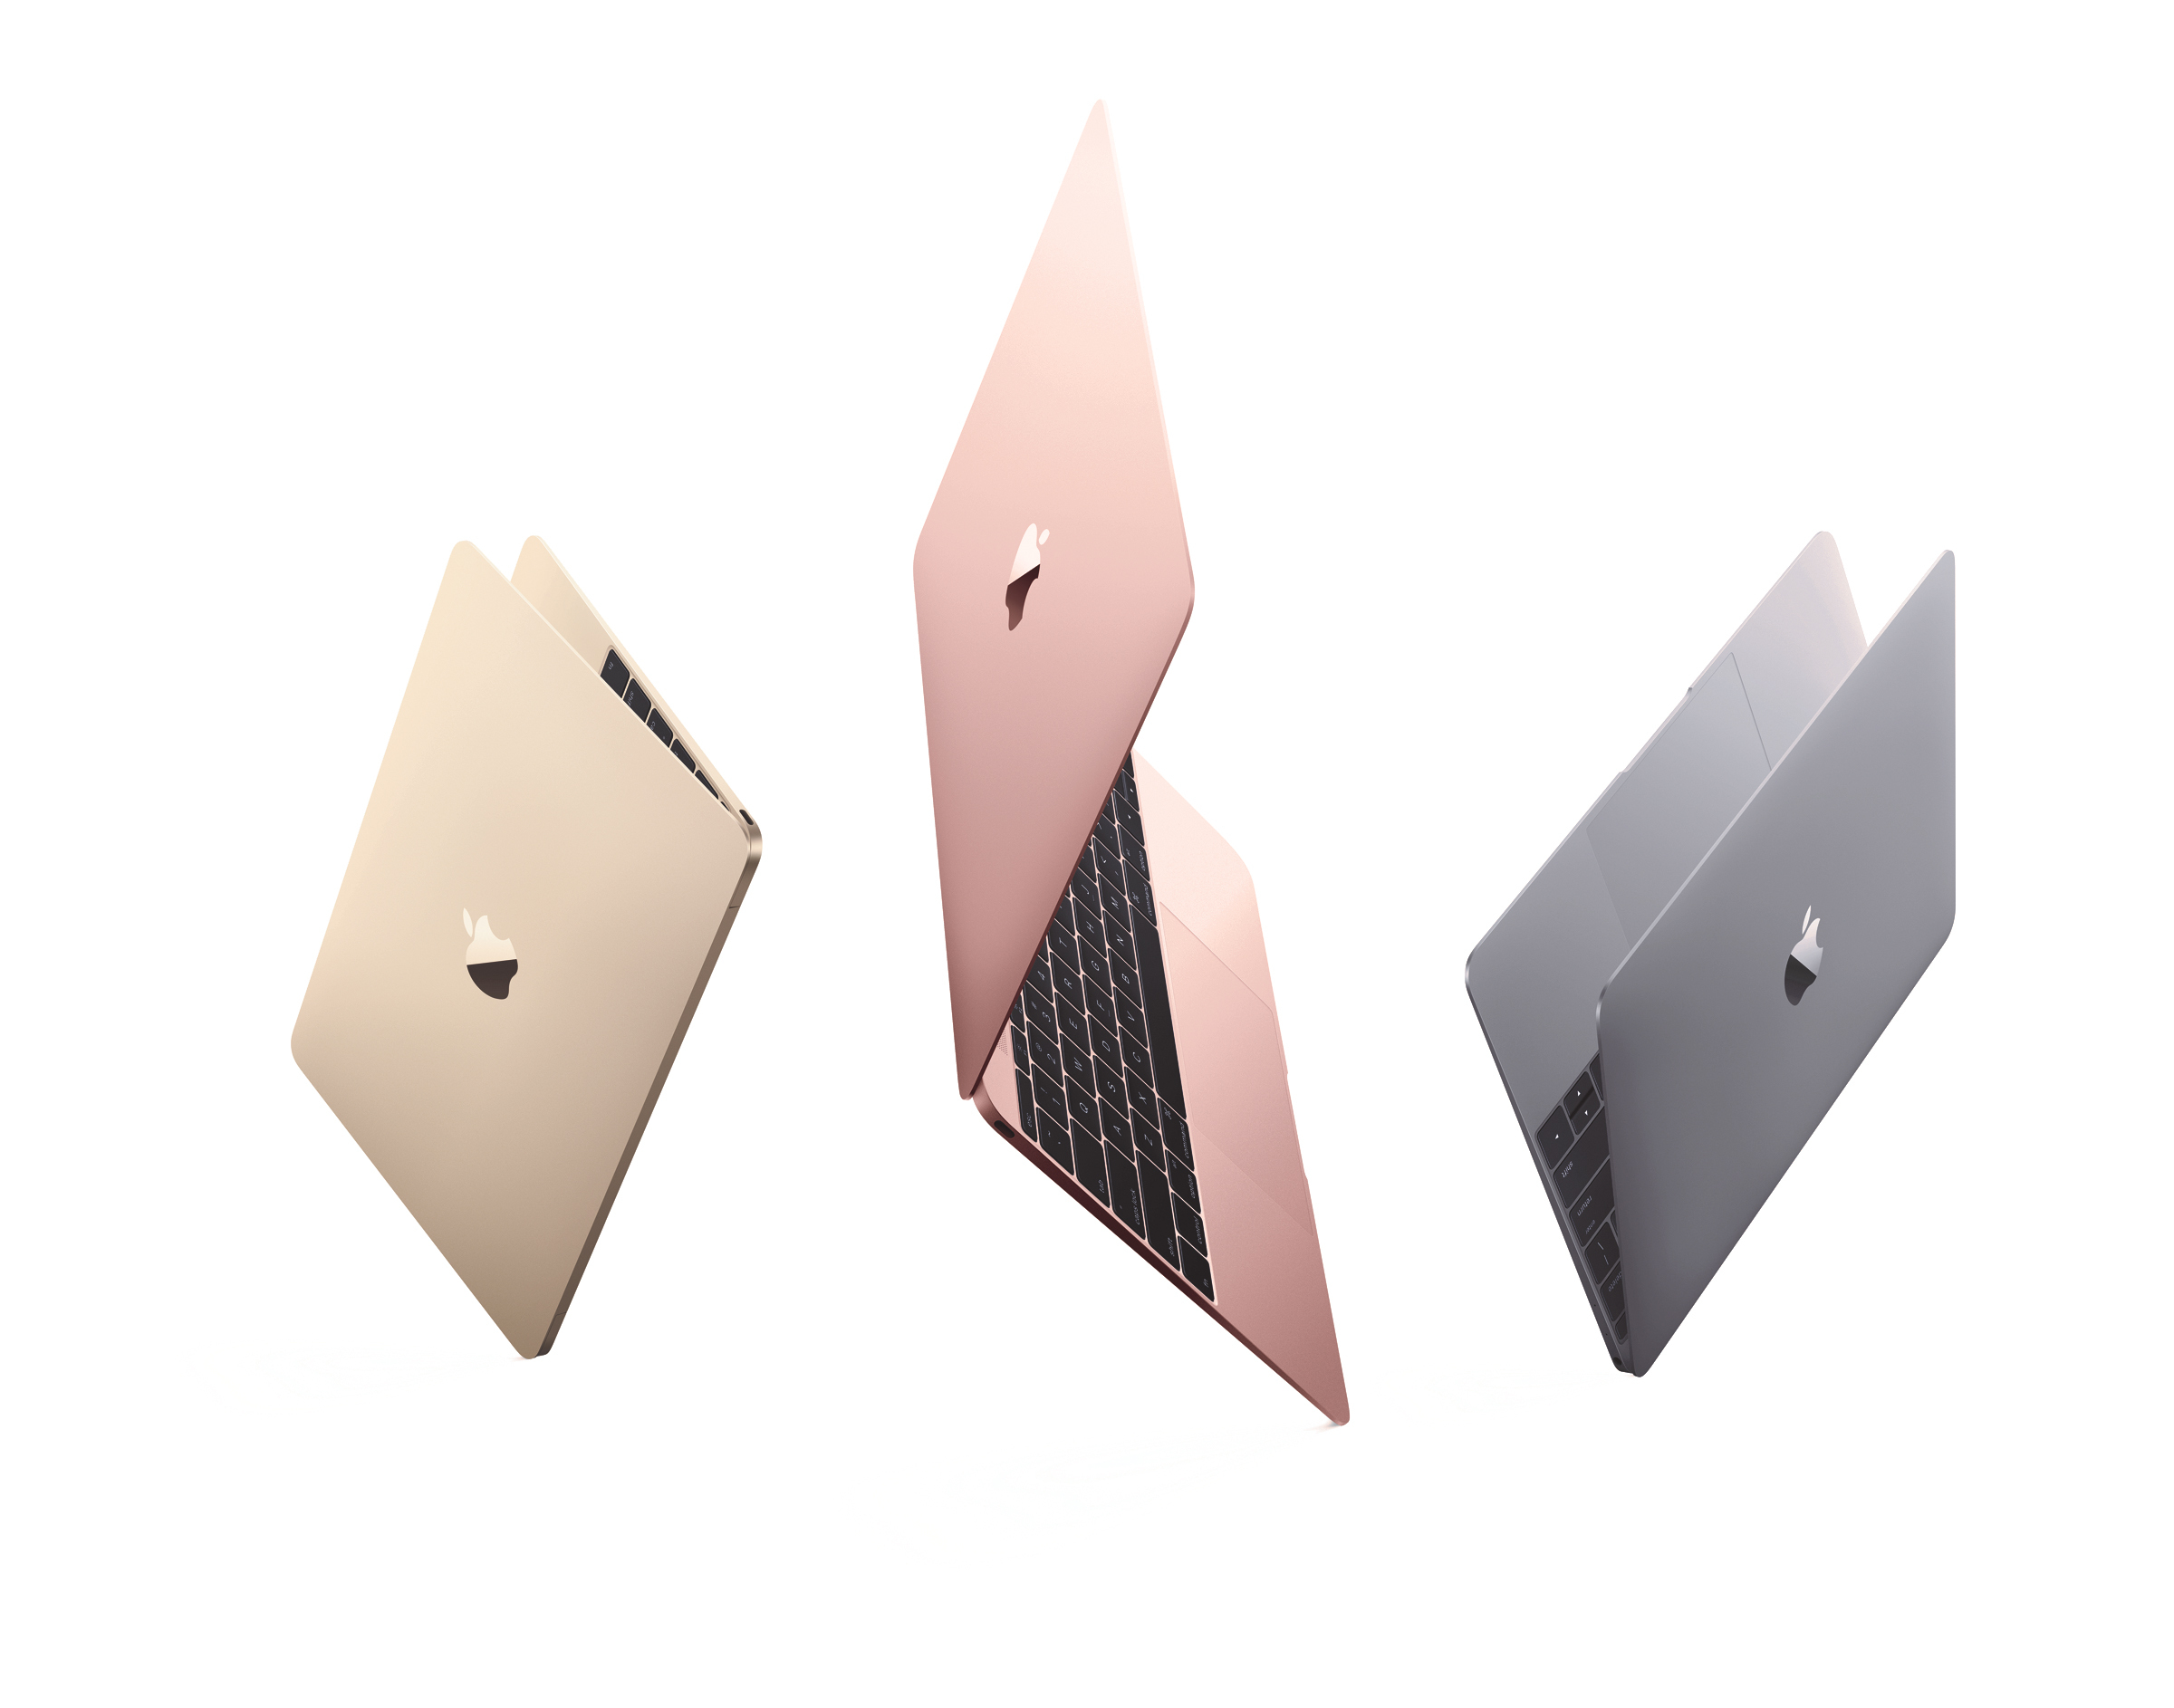 PC owner wondering about getting a Apple MacBook. Good or Bad decision?